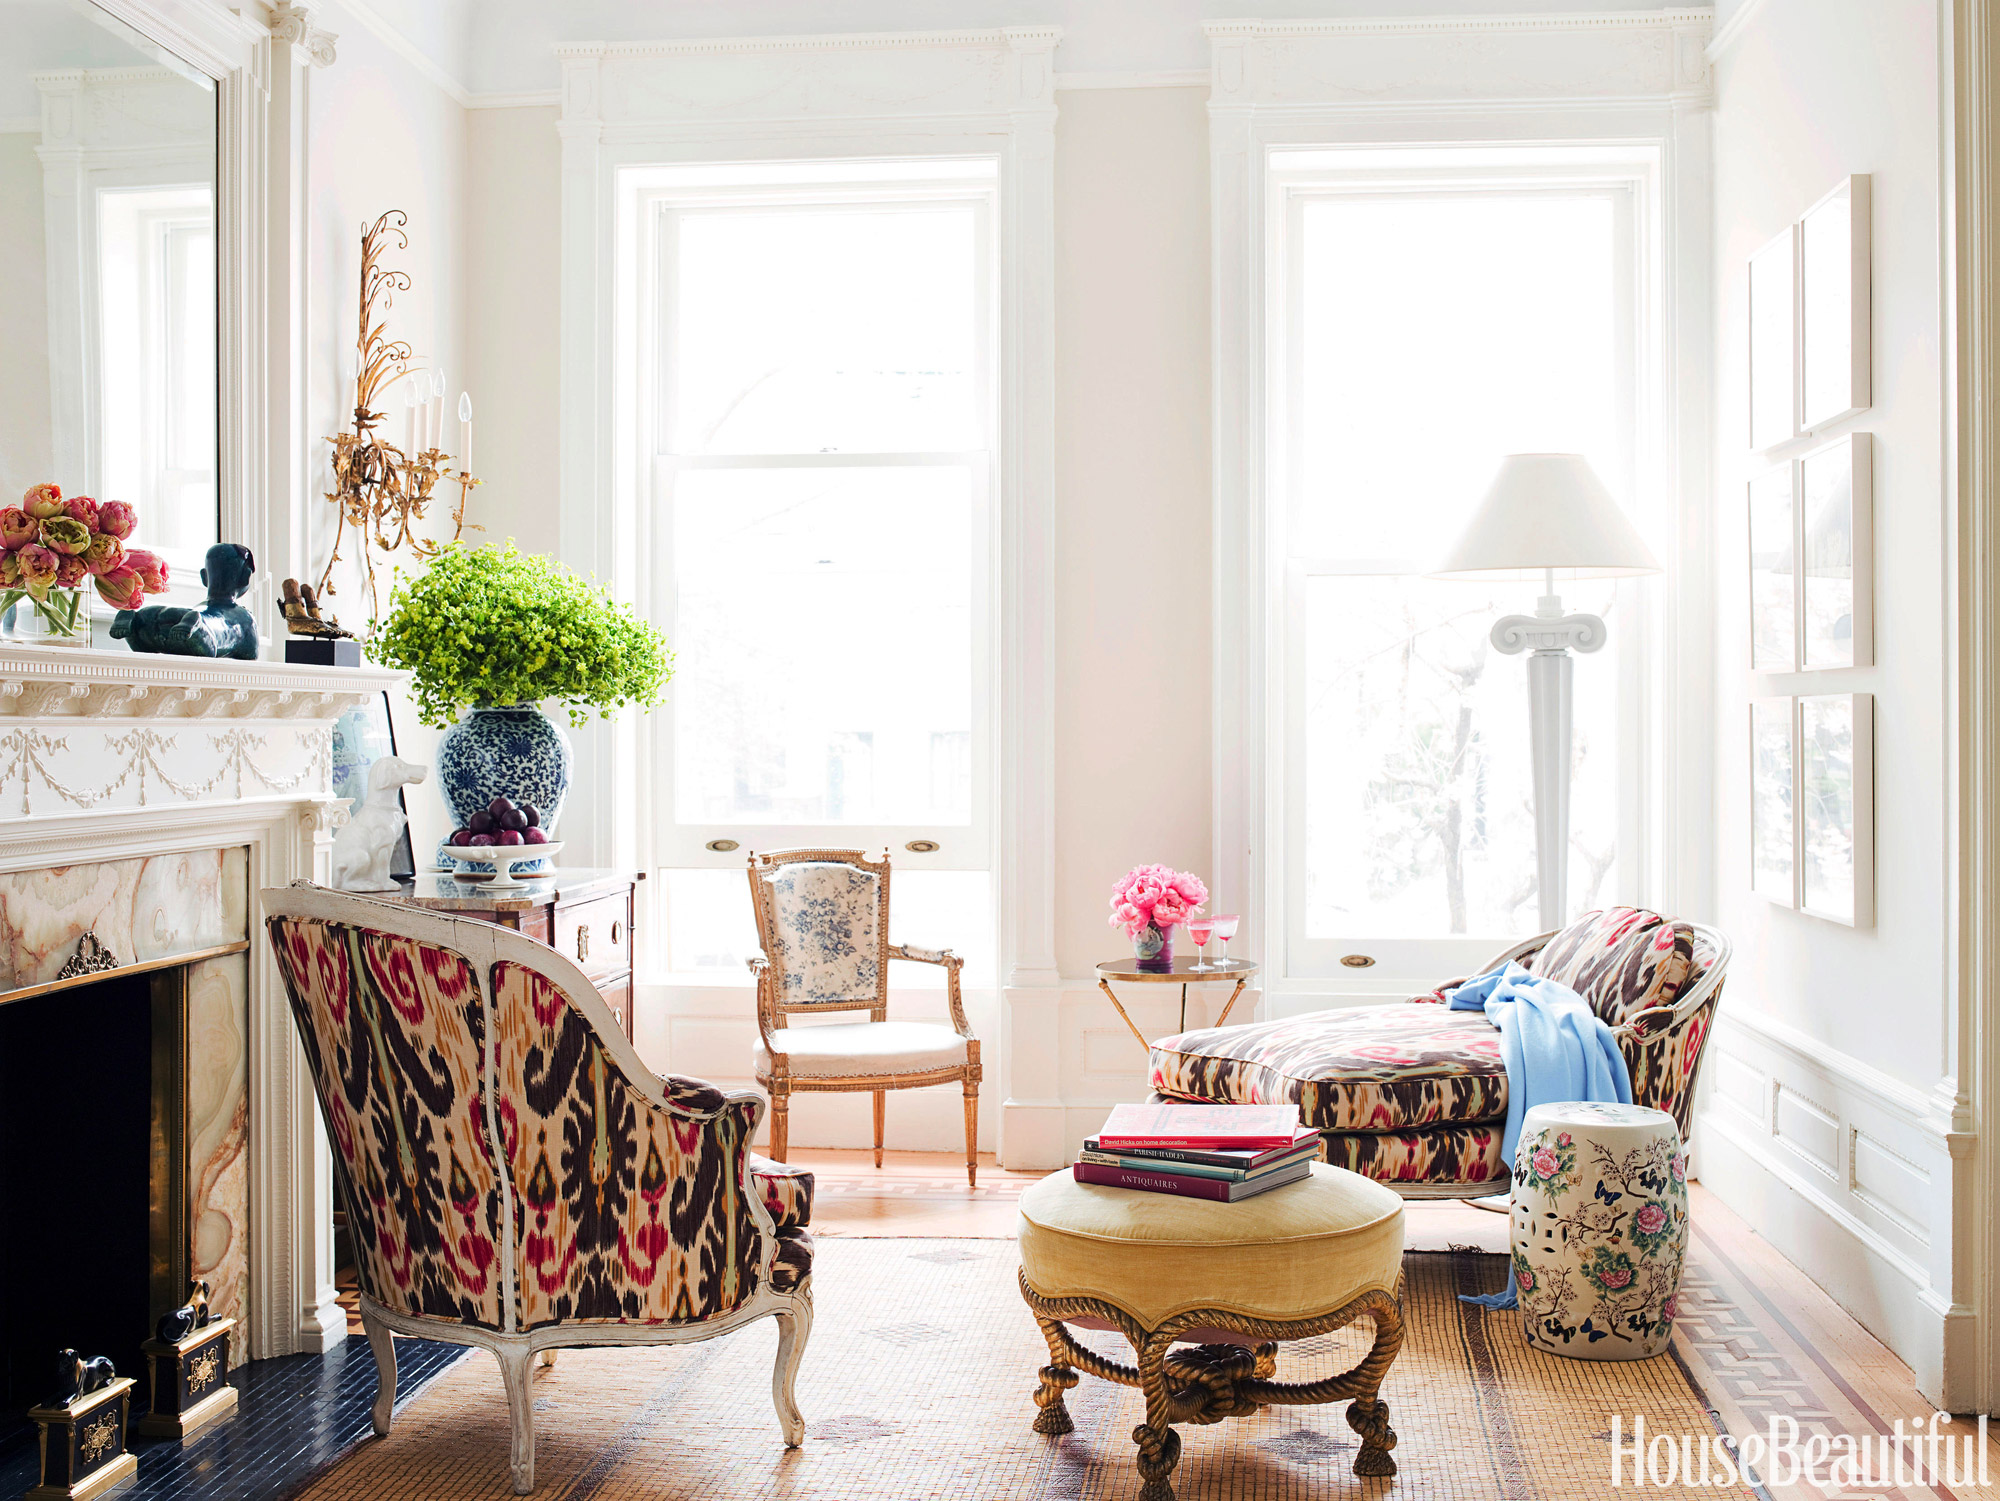 Jonathan berger 39 s small and flirty new york townhouse - Decorating a small townhouse ...